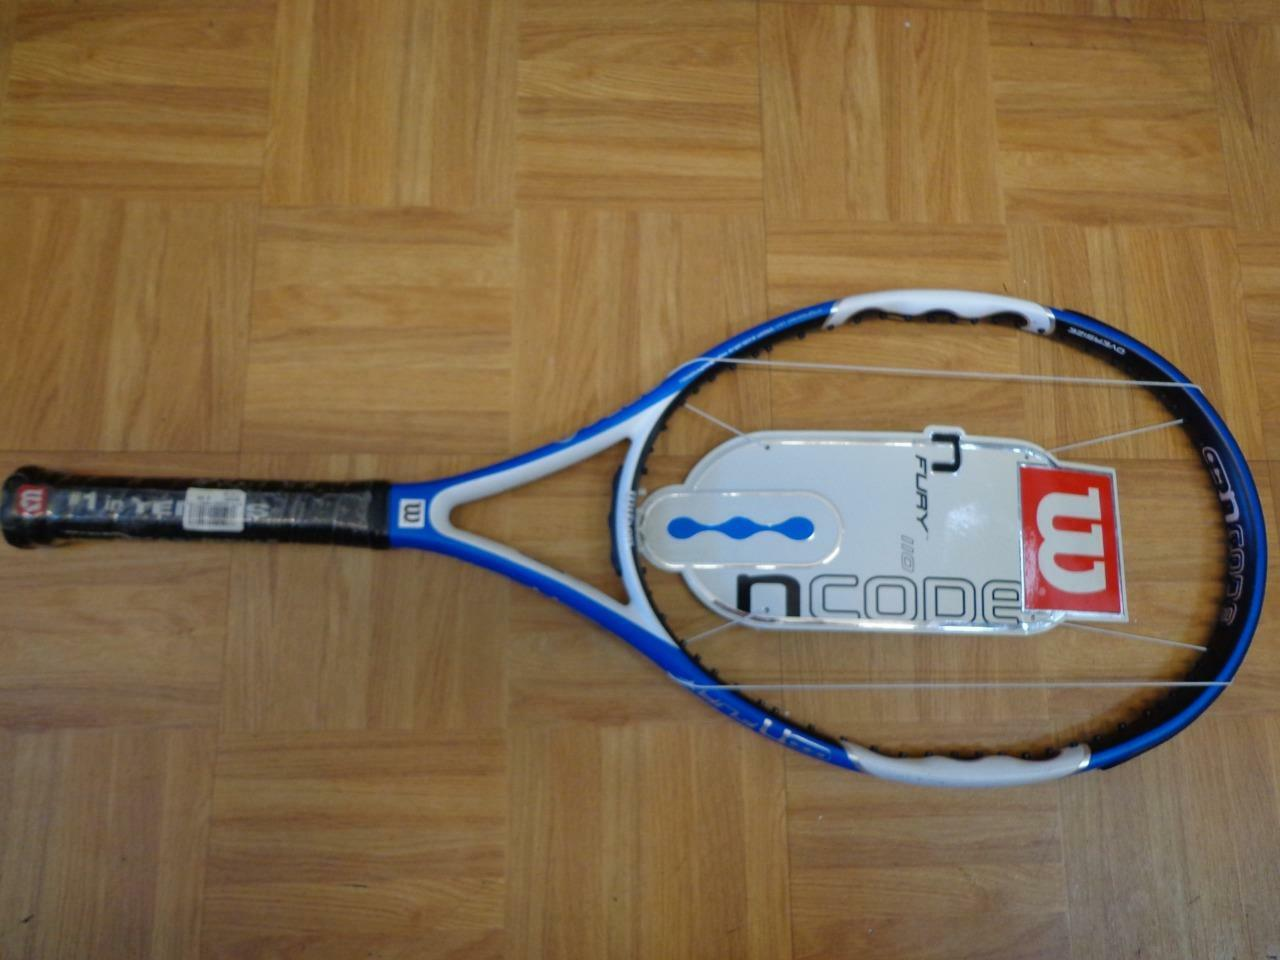 NEW Wilson Ncode N Fury 110 head 4 1/4 grip Tennis Racquet